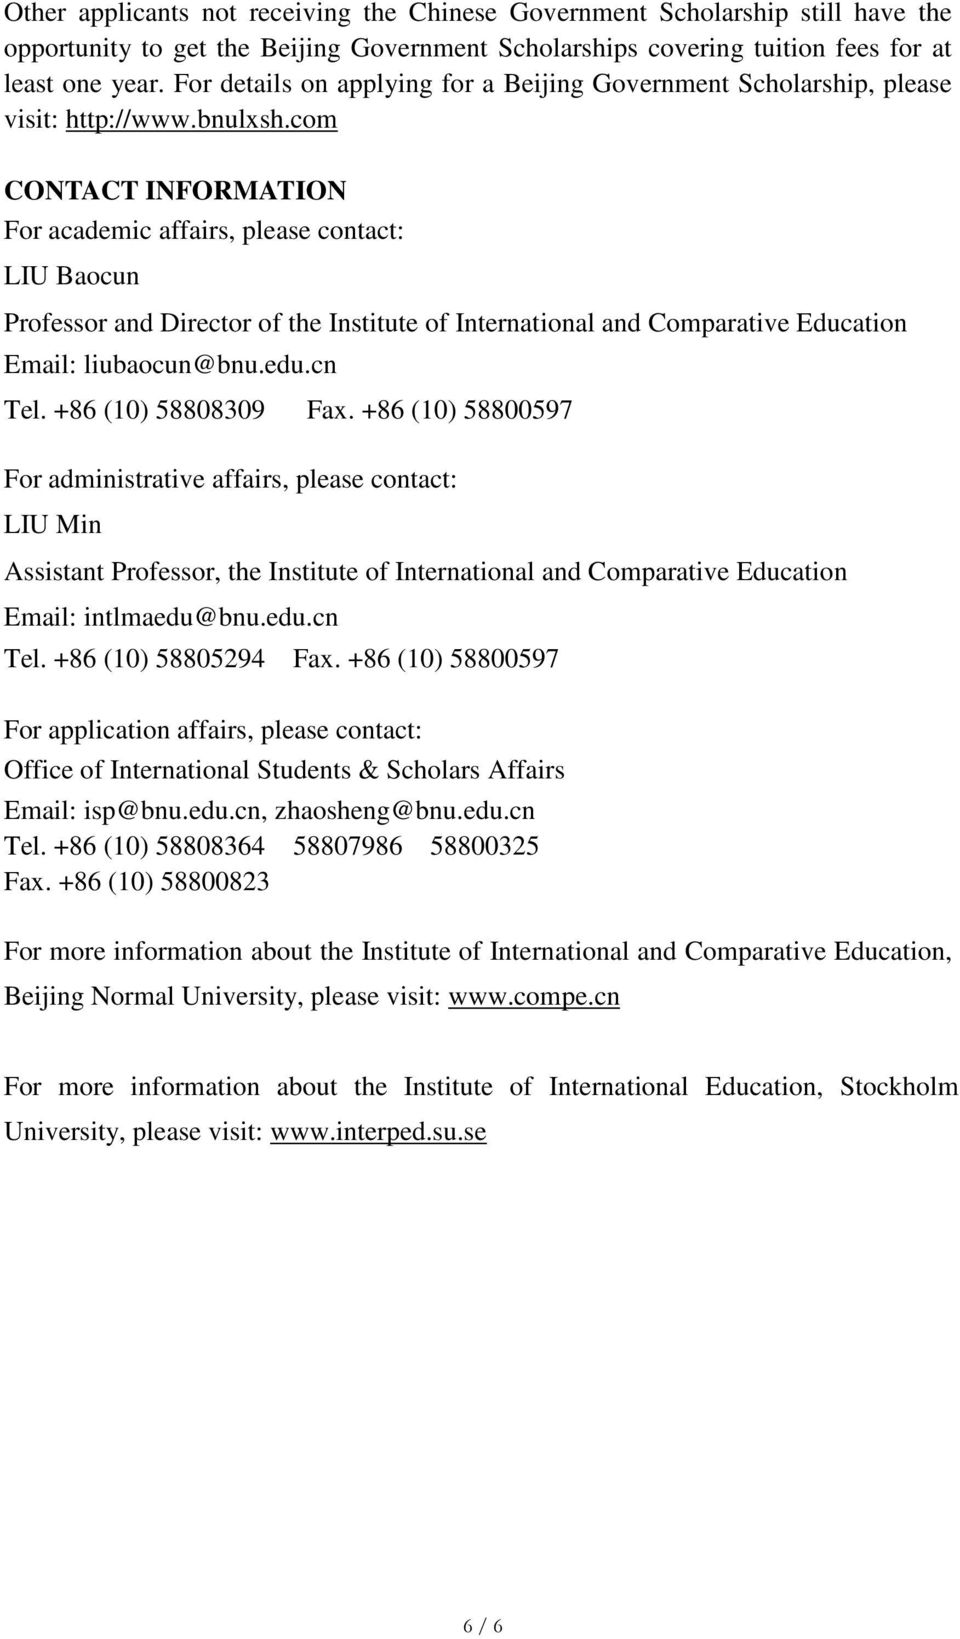 com CONTACT INFORMATION For academic affairs, please contact: LIU Baocun Professor and Director of the Institute of International and Comparative Education Email: liubaocun@bnu.edu.cn Tel.